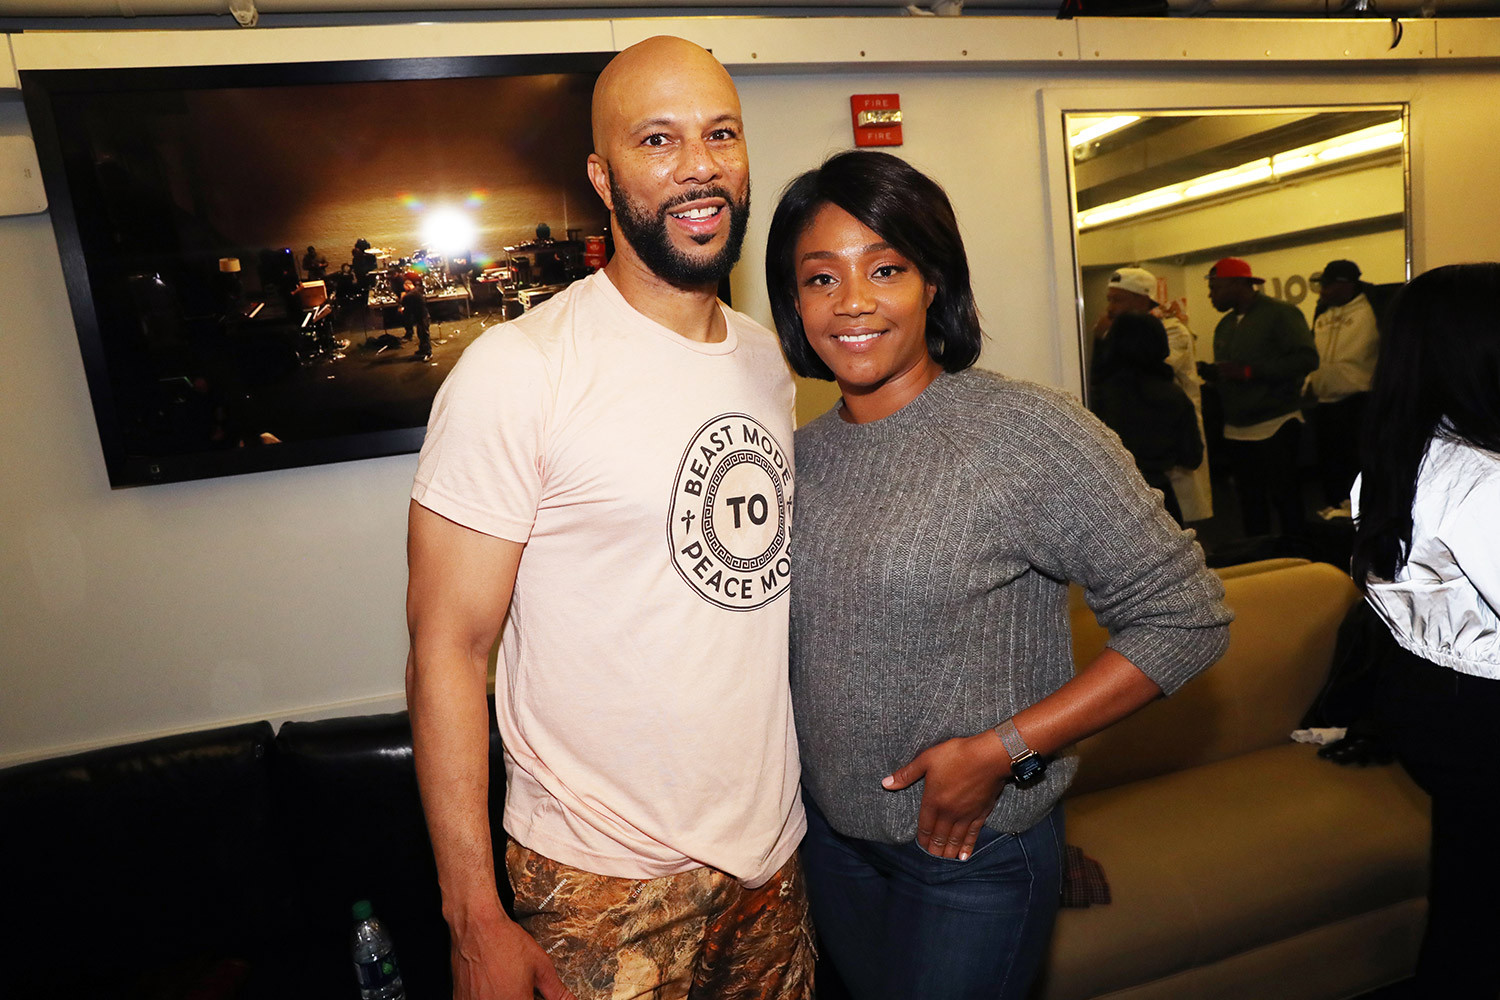 Actress Tiffany Haddish and boyfriend Common share a kiss in racy #silhouttechallenge video